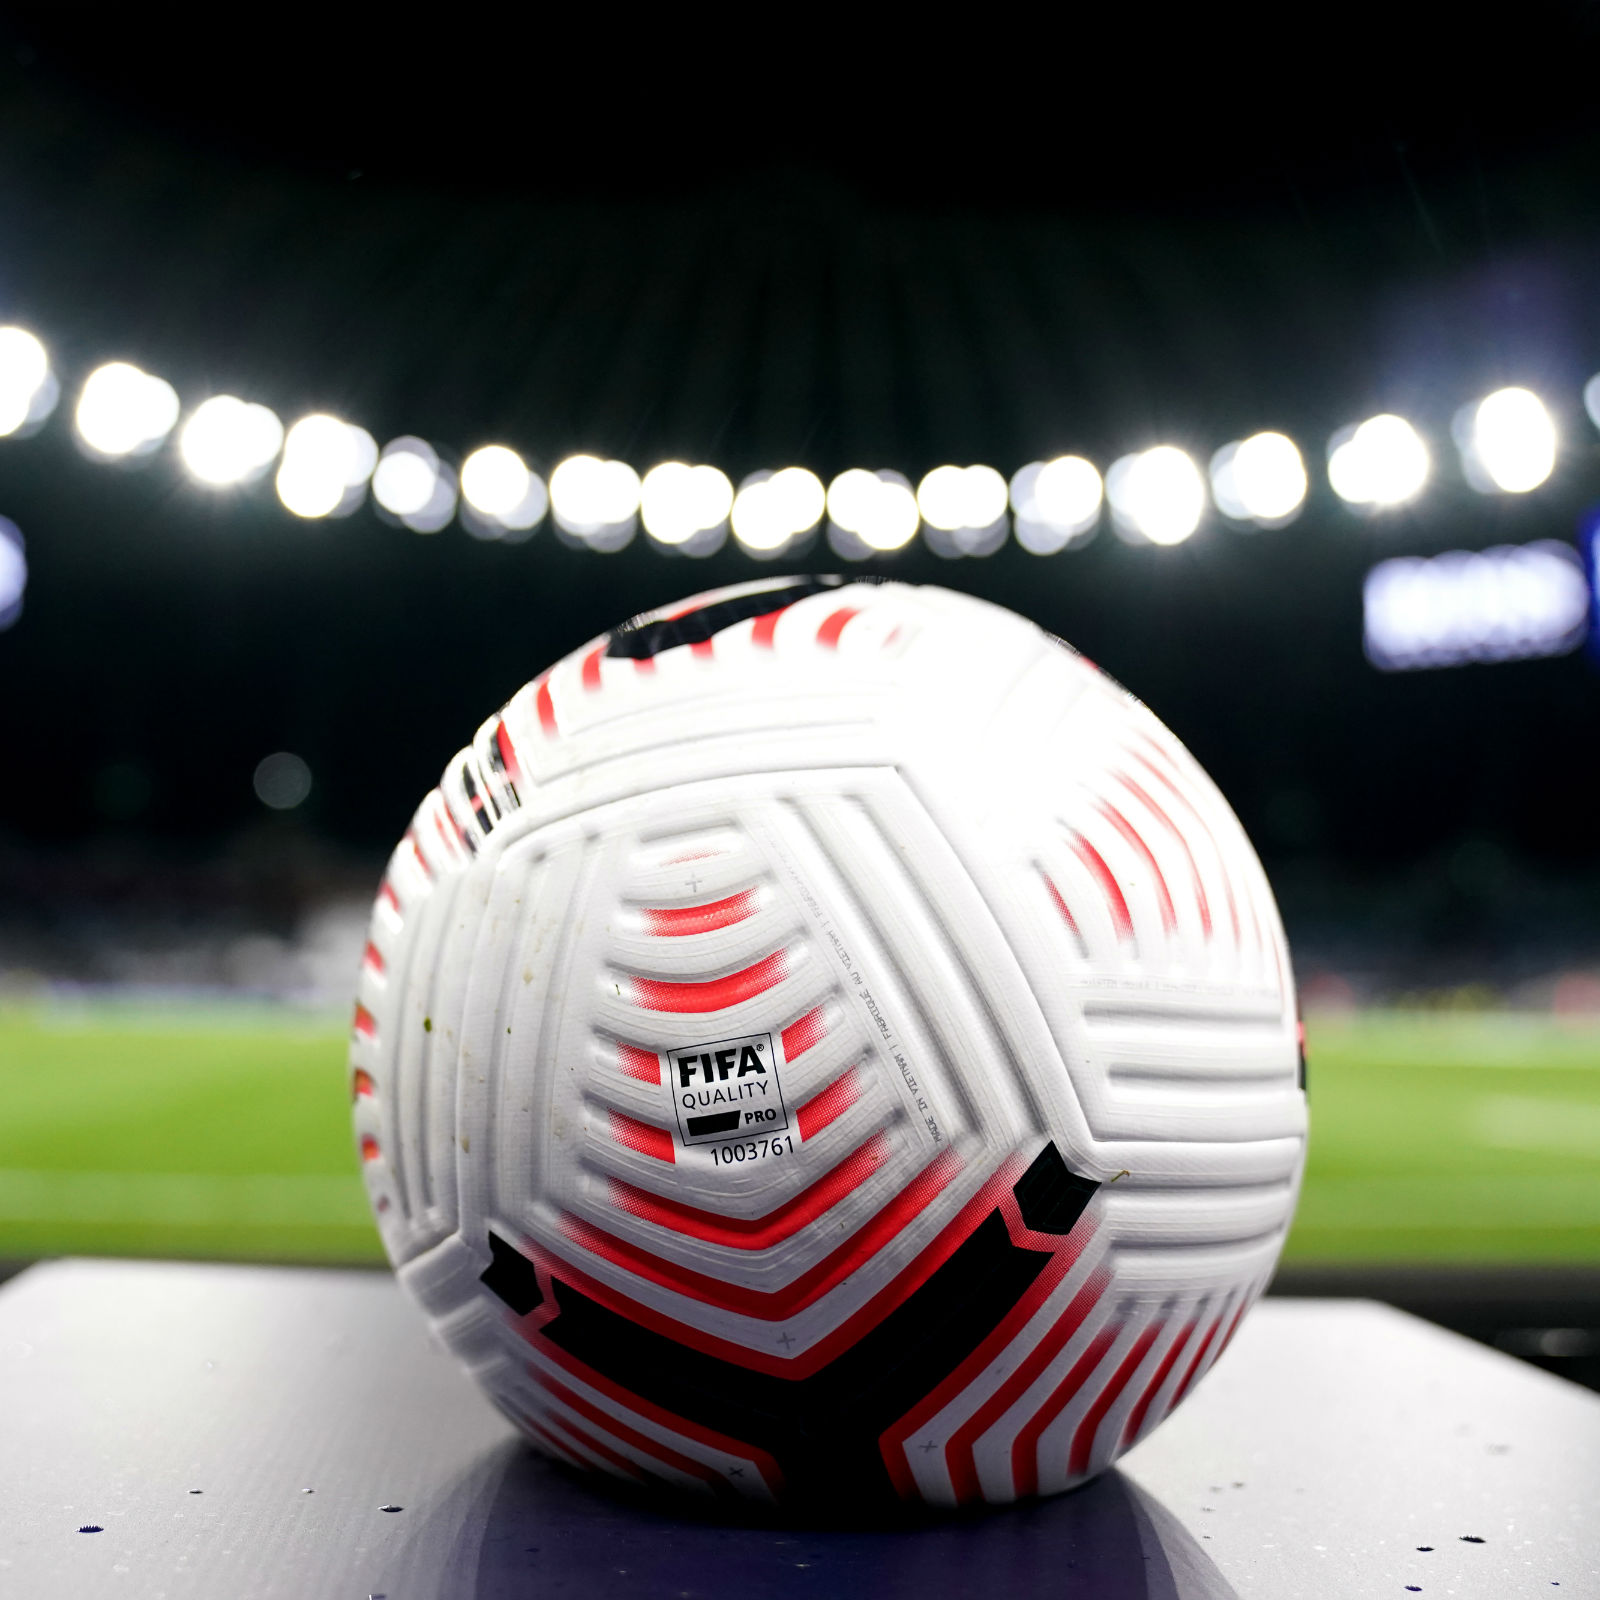 Epl betting predictions for today sporting index spread betting cricket test matches 2021